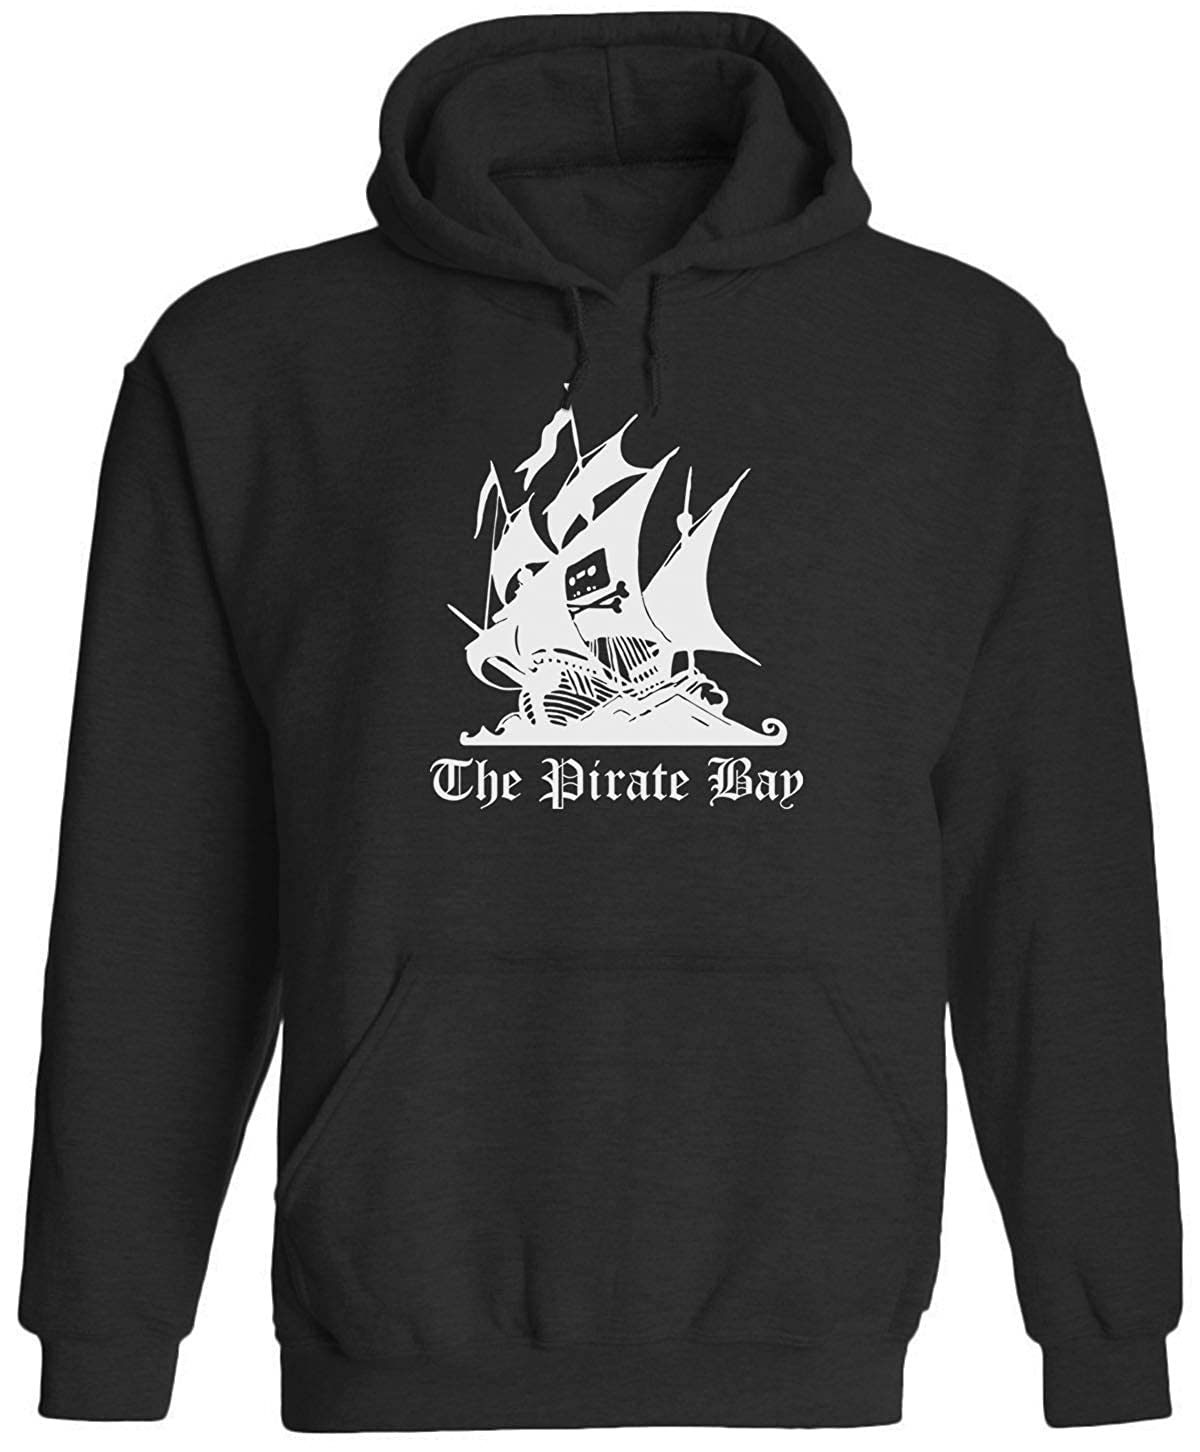 White Pirate Bay Logo Unisex Adult Hooded Pullover Sweatshirt